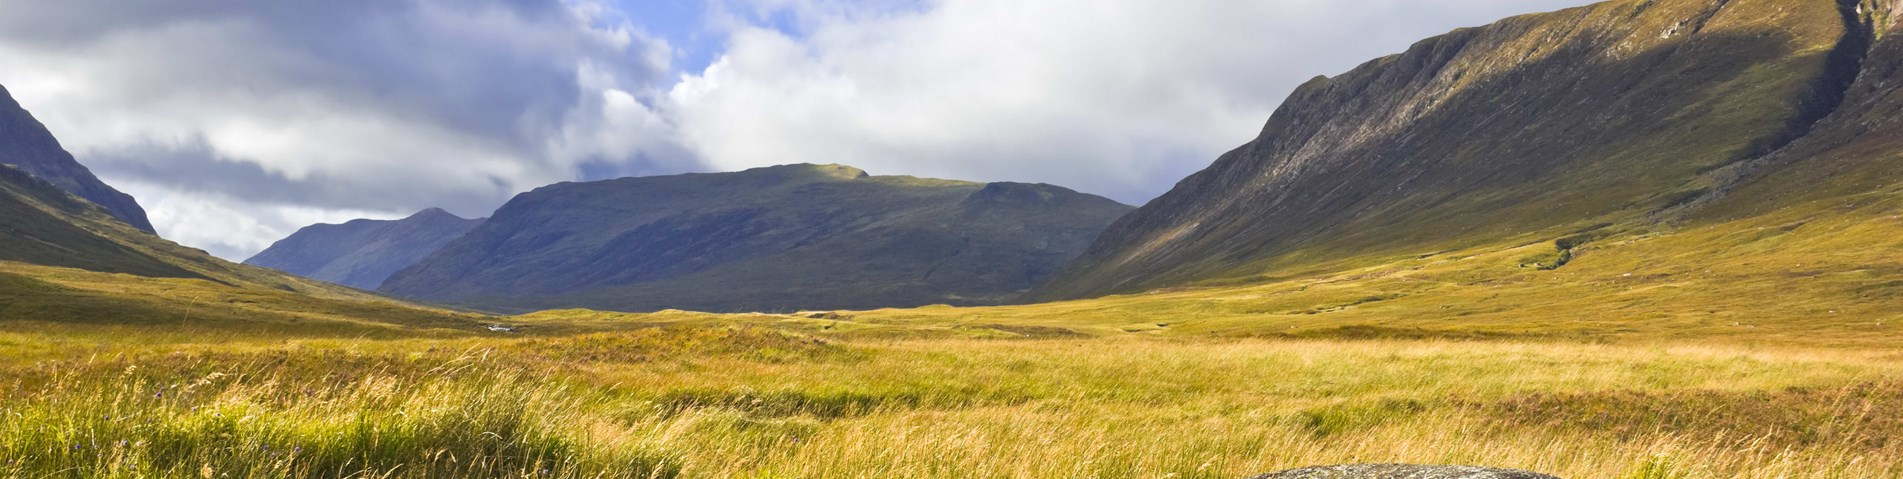 Glen near Glencoe with boulder and grassland and heather - Shutterstock.jpg